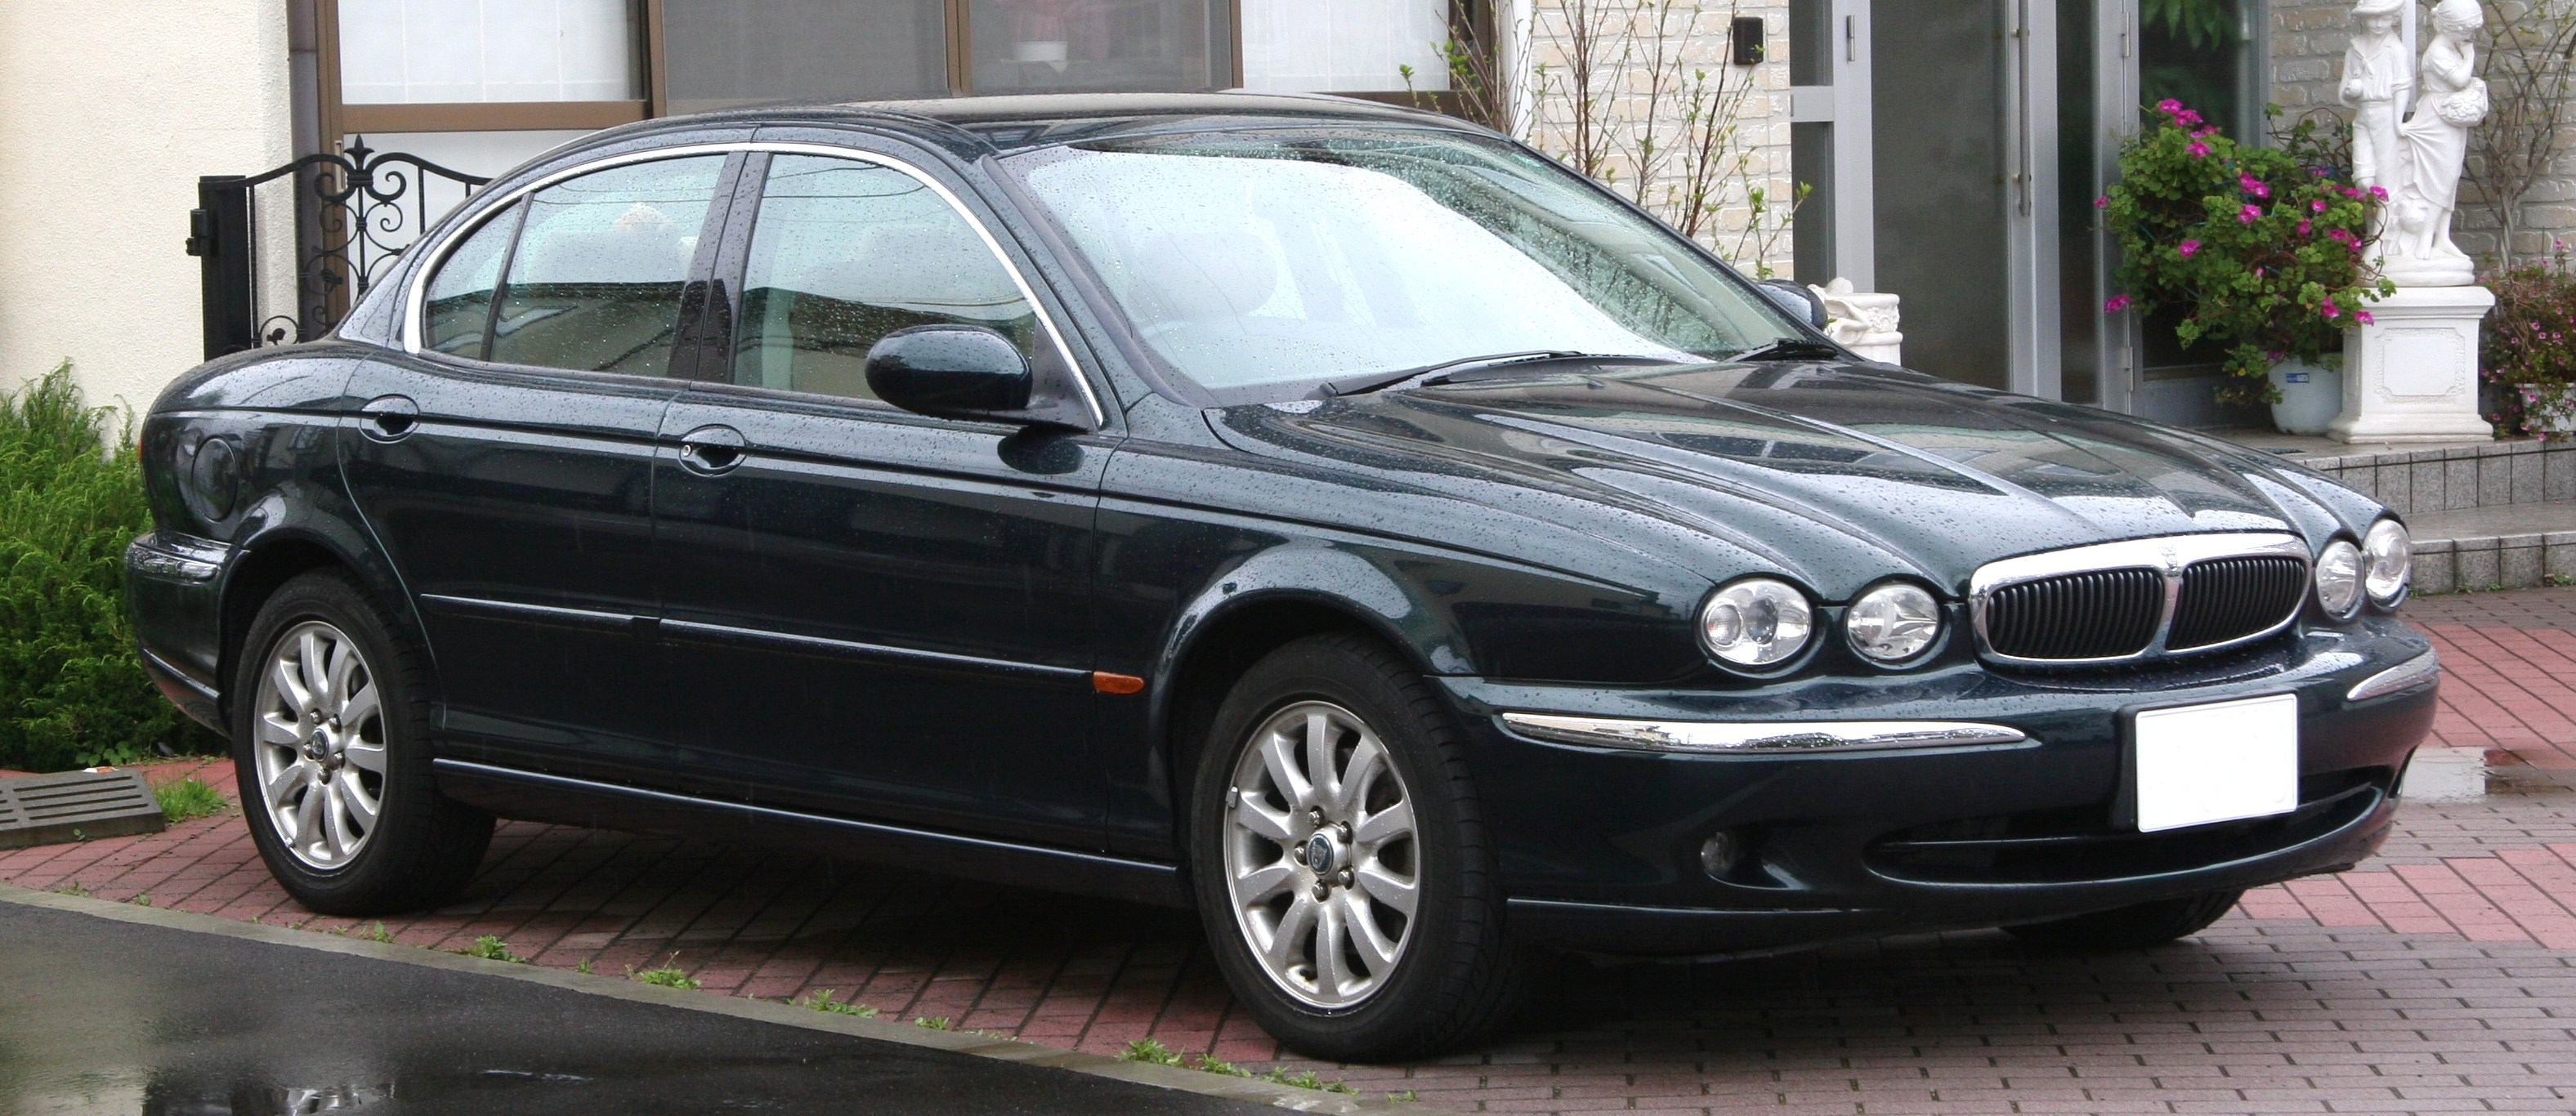 Jaguar x photo - 4